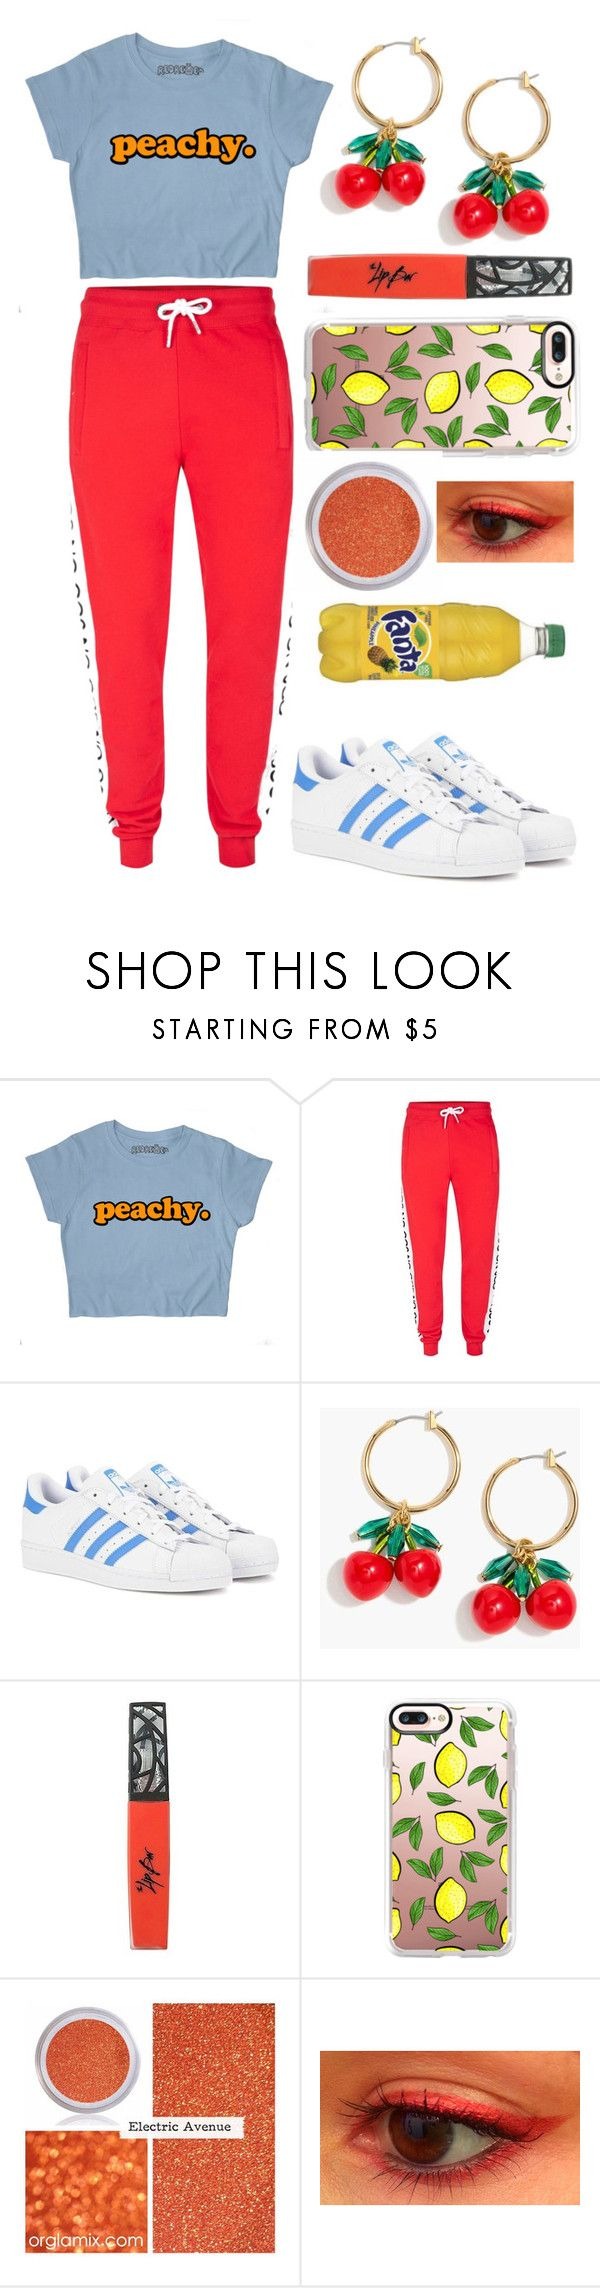 """""""Peachy."""" by peachywaffhles ❤ liked on Polyvore featuring Topman, adidas Originals, J.Crew, The Lip Bar and Casetify"""